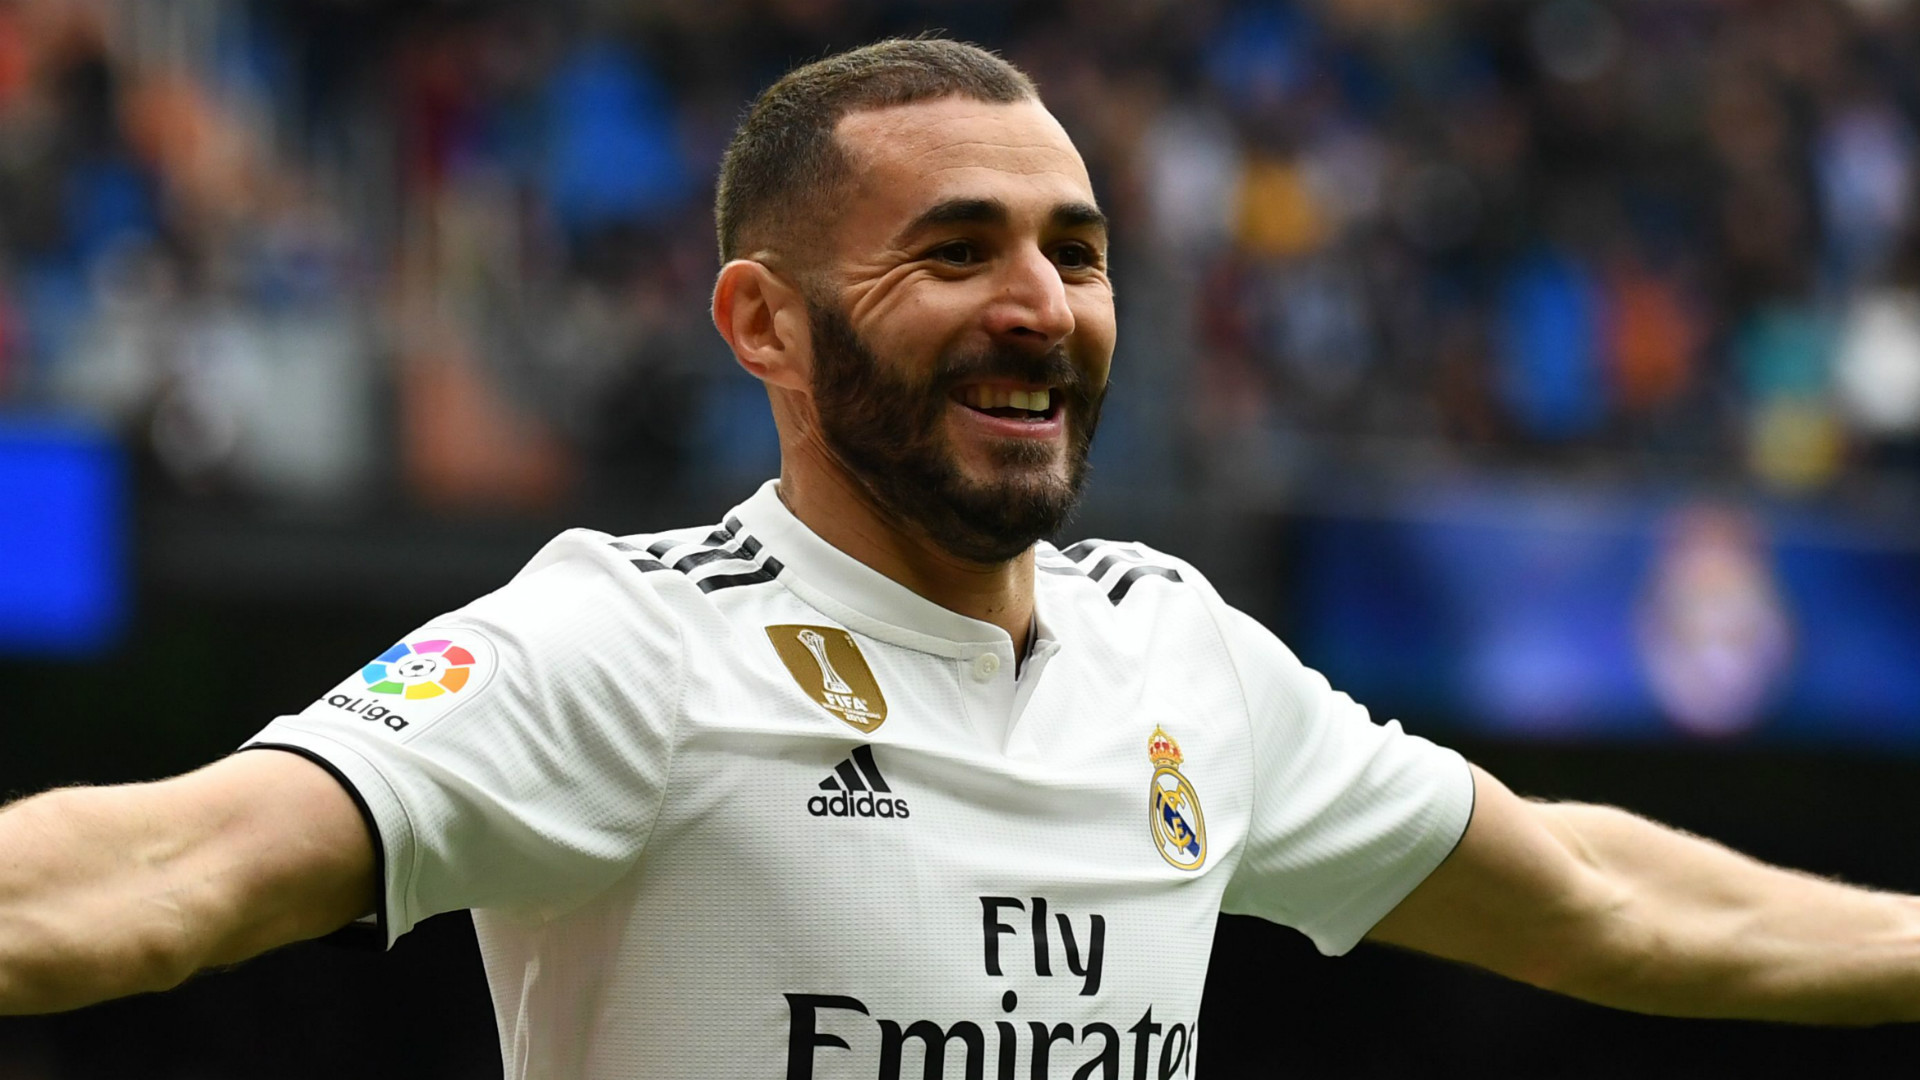 Real Madrid 7 3 Getafe 5 Talking Points: Real Madrid News: Karim Benzema Surpasses Cristiano